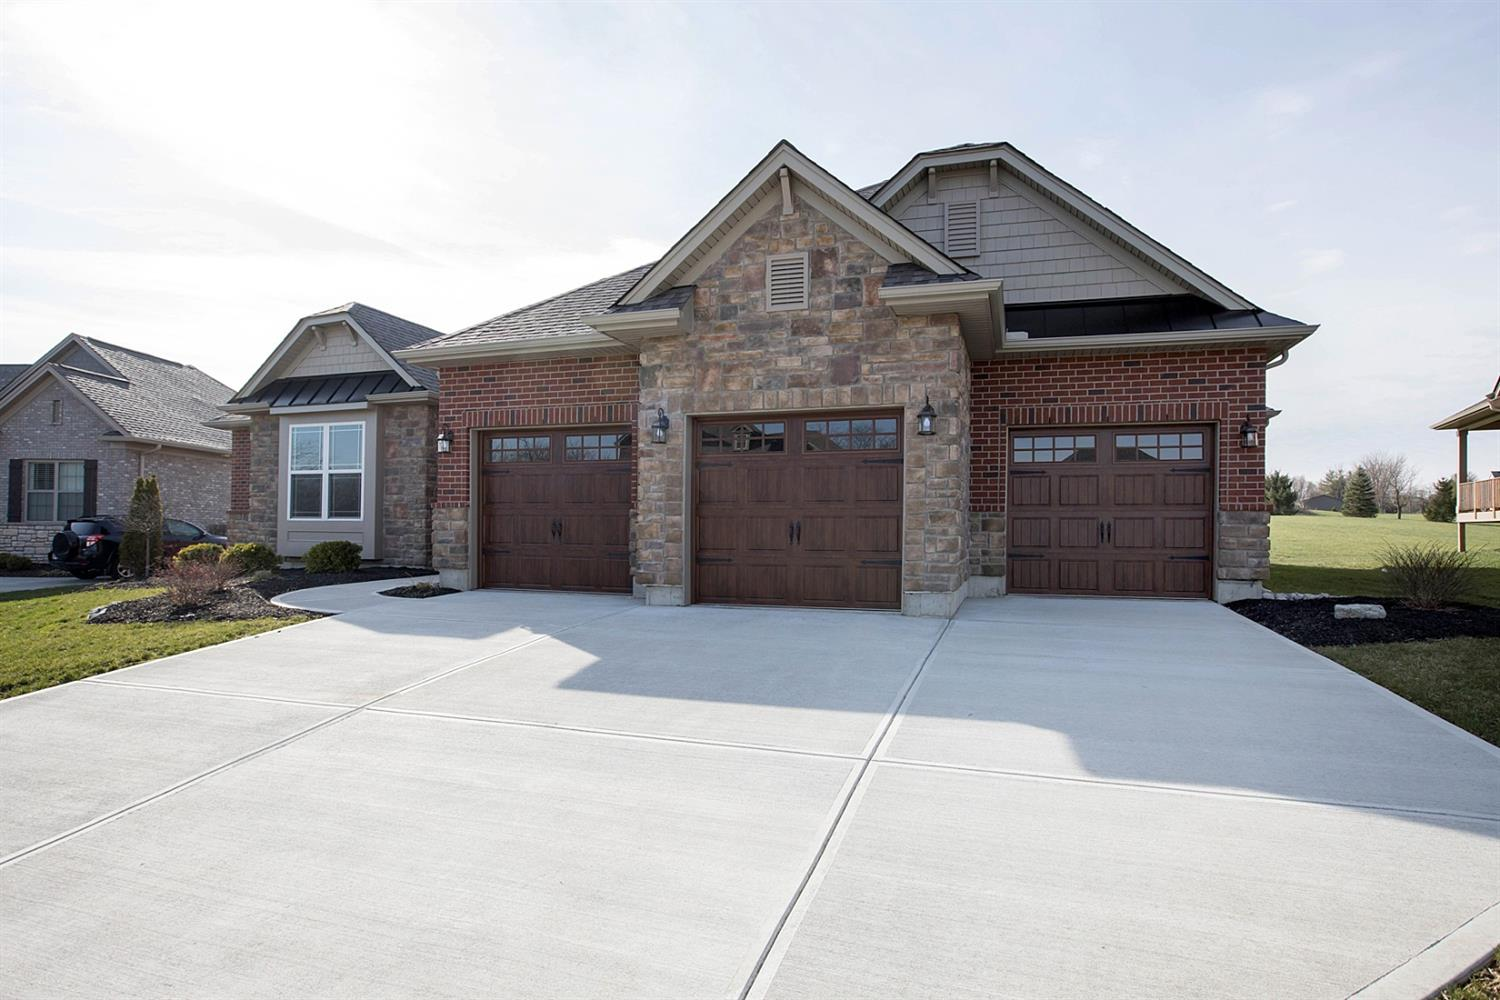 Property for sale at 5273 Stallion Court, Liberty Twp,  Ohio 45011